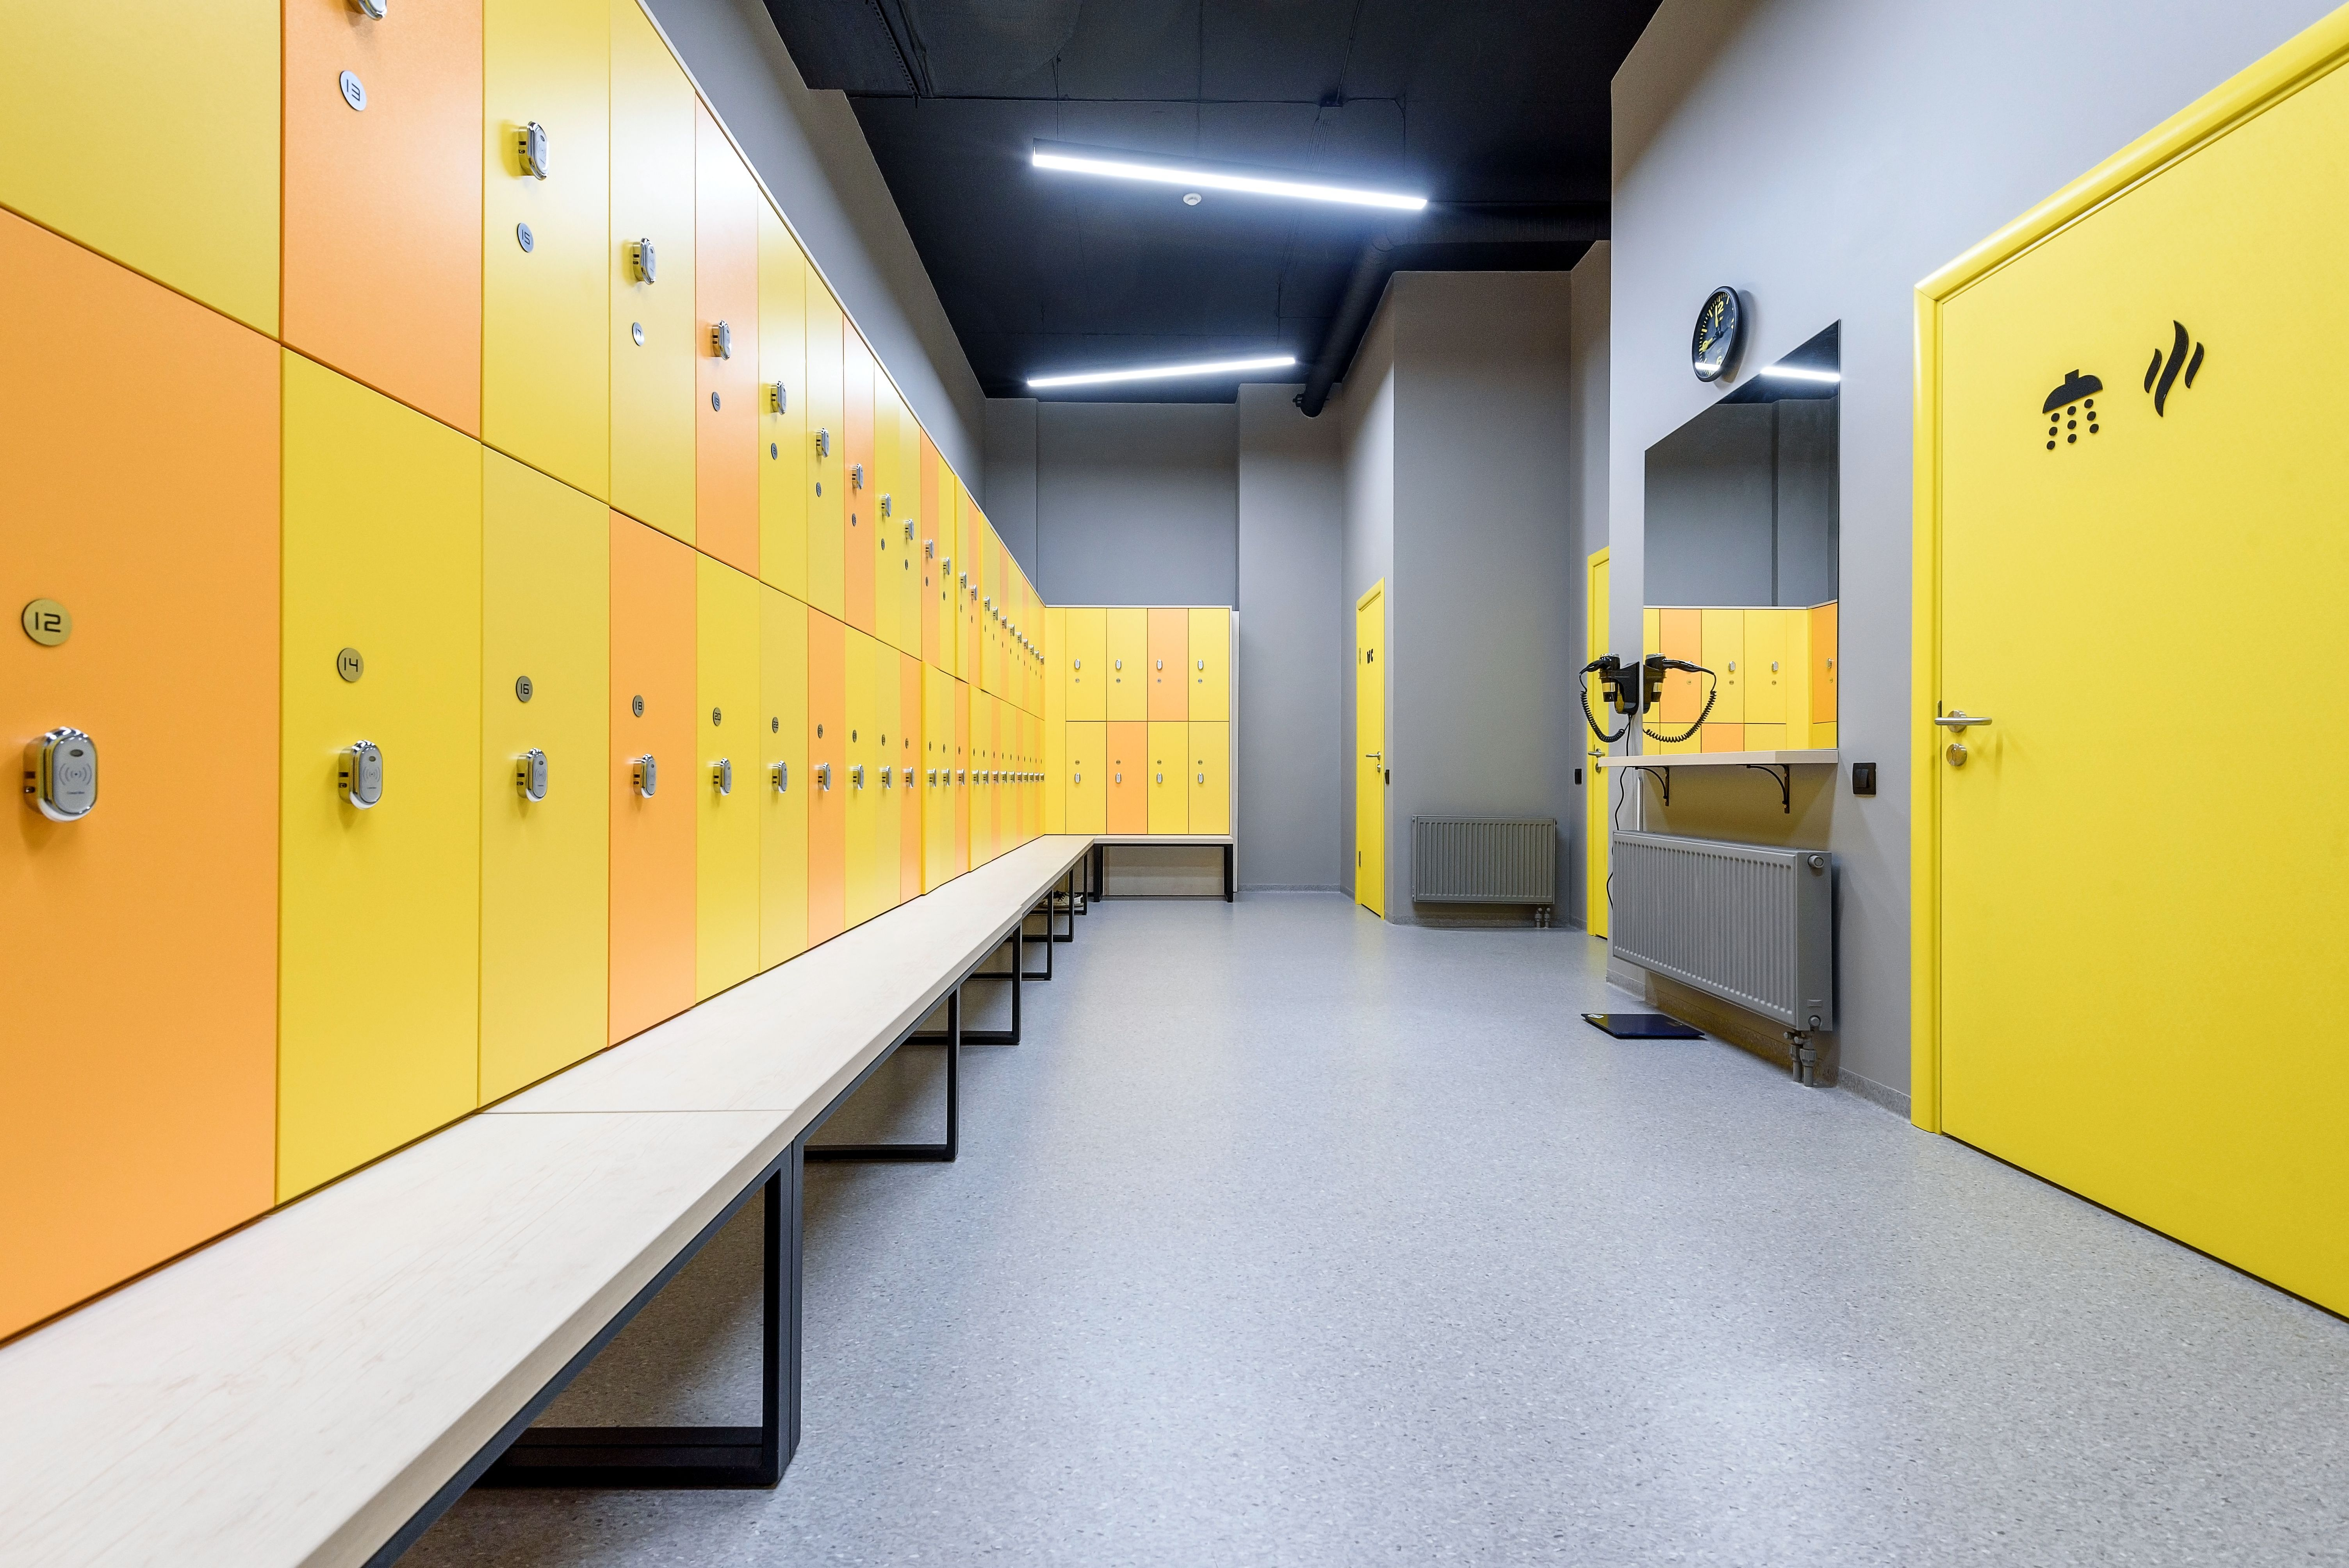 Time To Hit The Locker Room Yellow And Orange Combined With The Grey Vinyl Flooring Give It A Sleek And Mo Grey Vinyl Flooring Vinyl Flooring Locker Storage